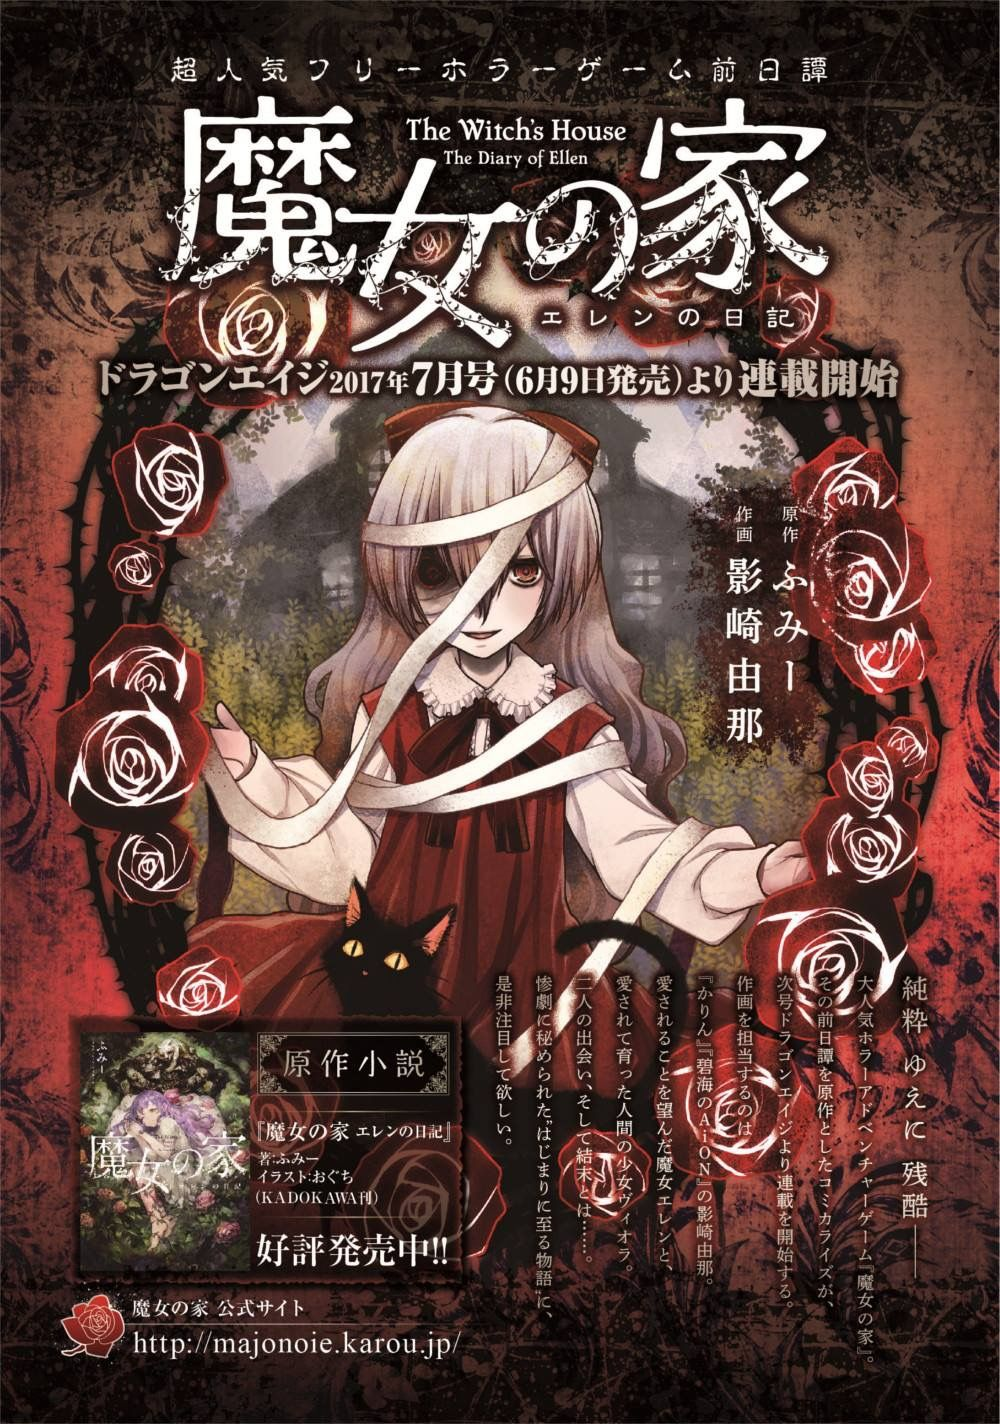 Pin by えリか on Bucket list Witch house, Light novel, Witch